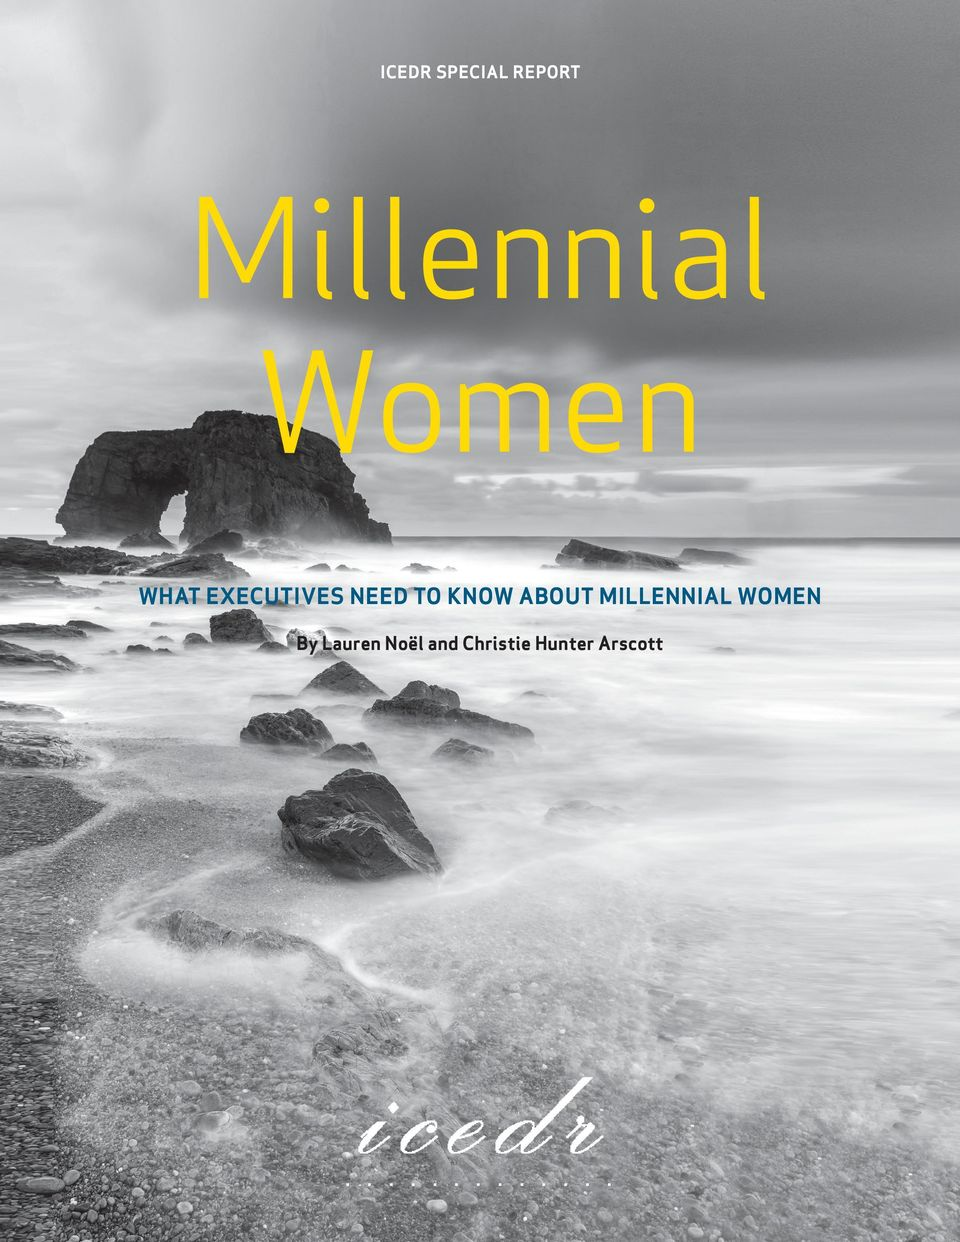 KNOW ABOUT MILLENNIAL WOMEN By